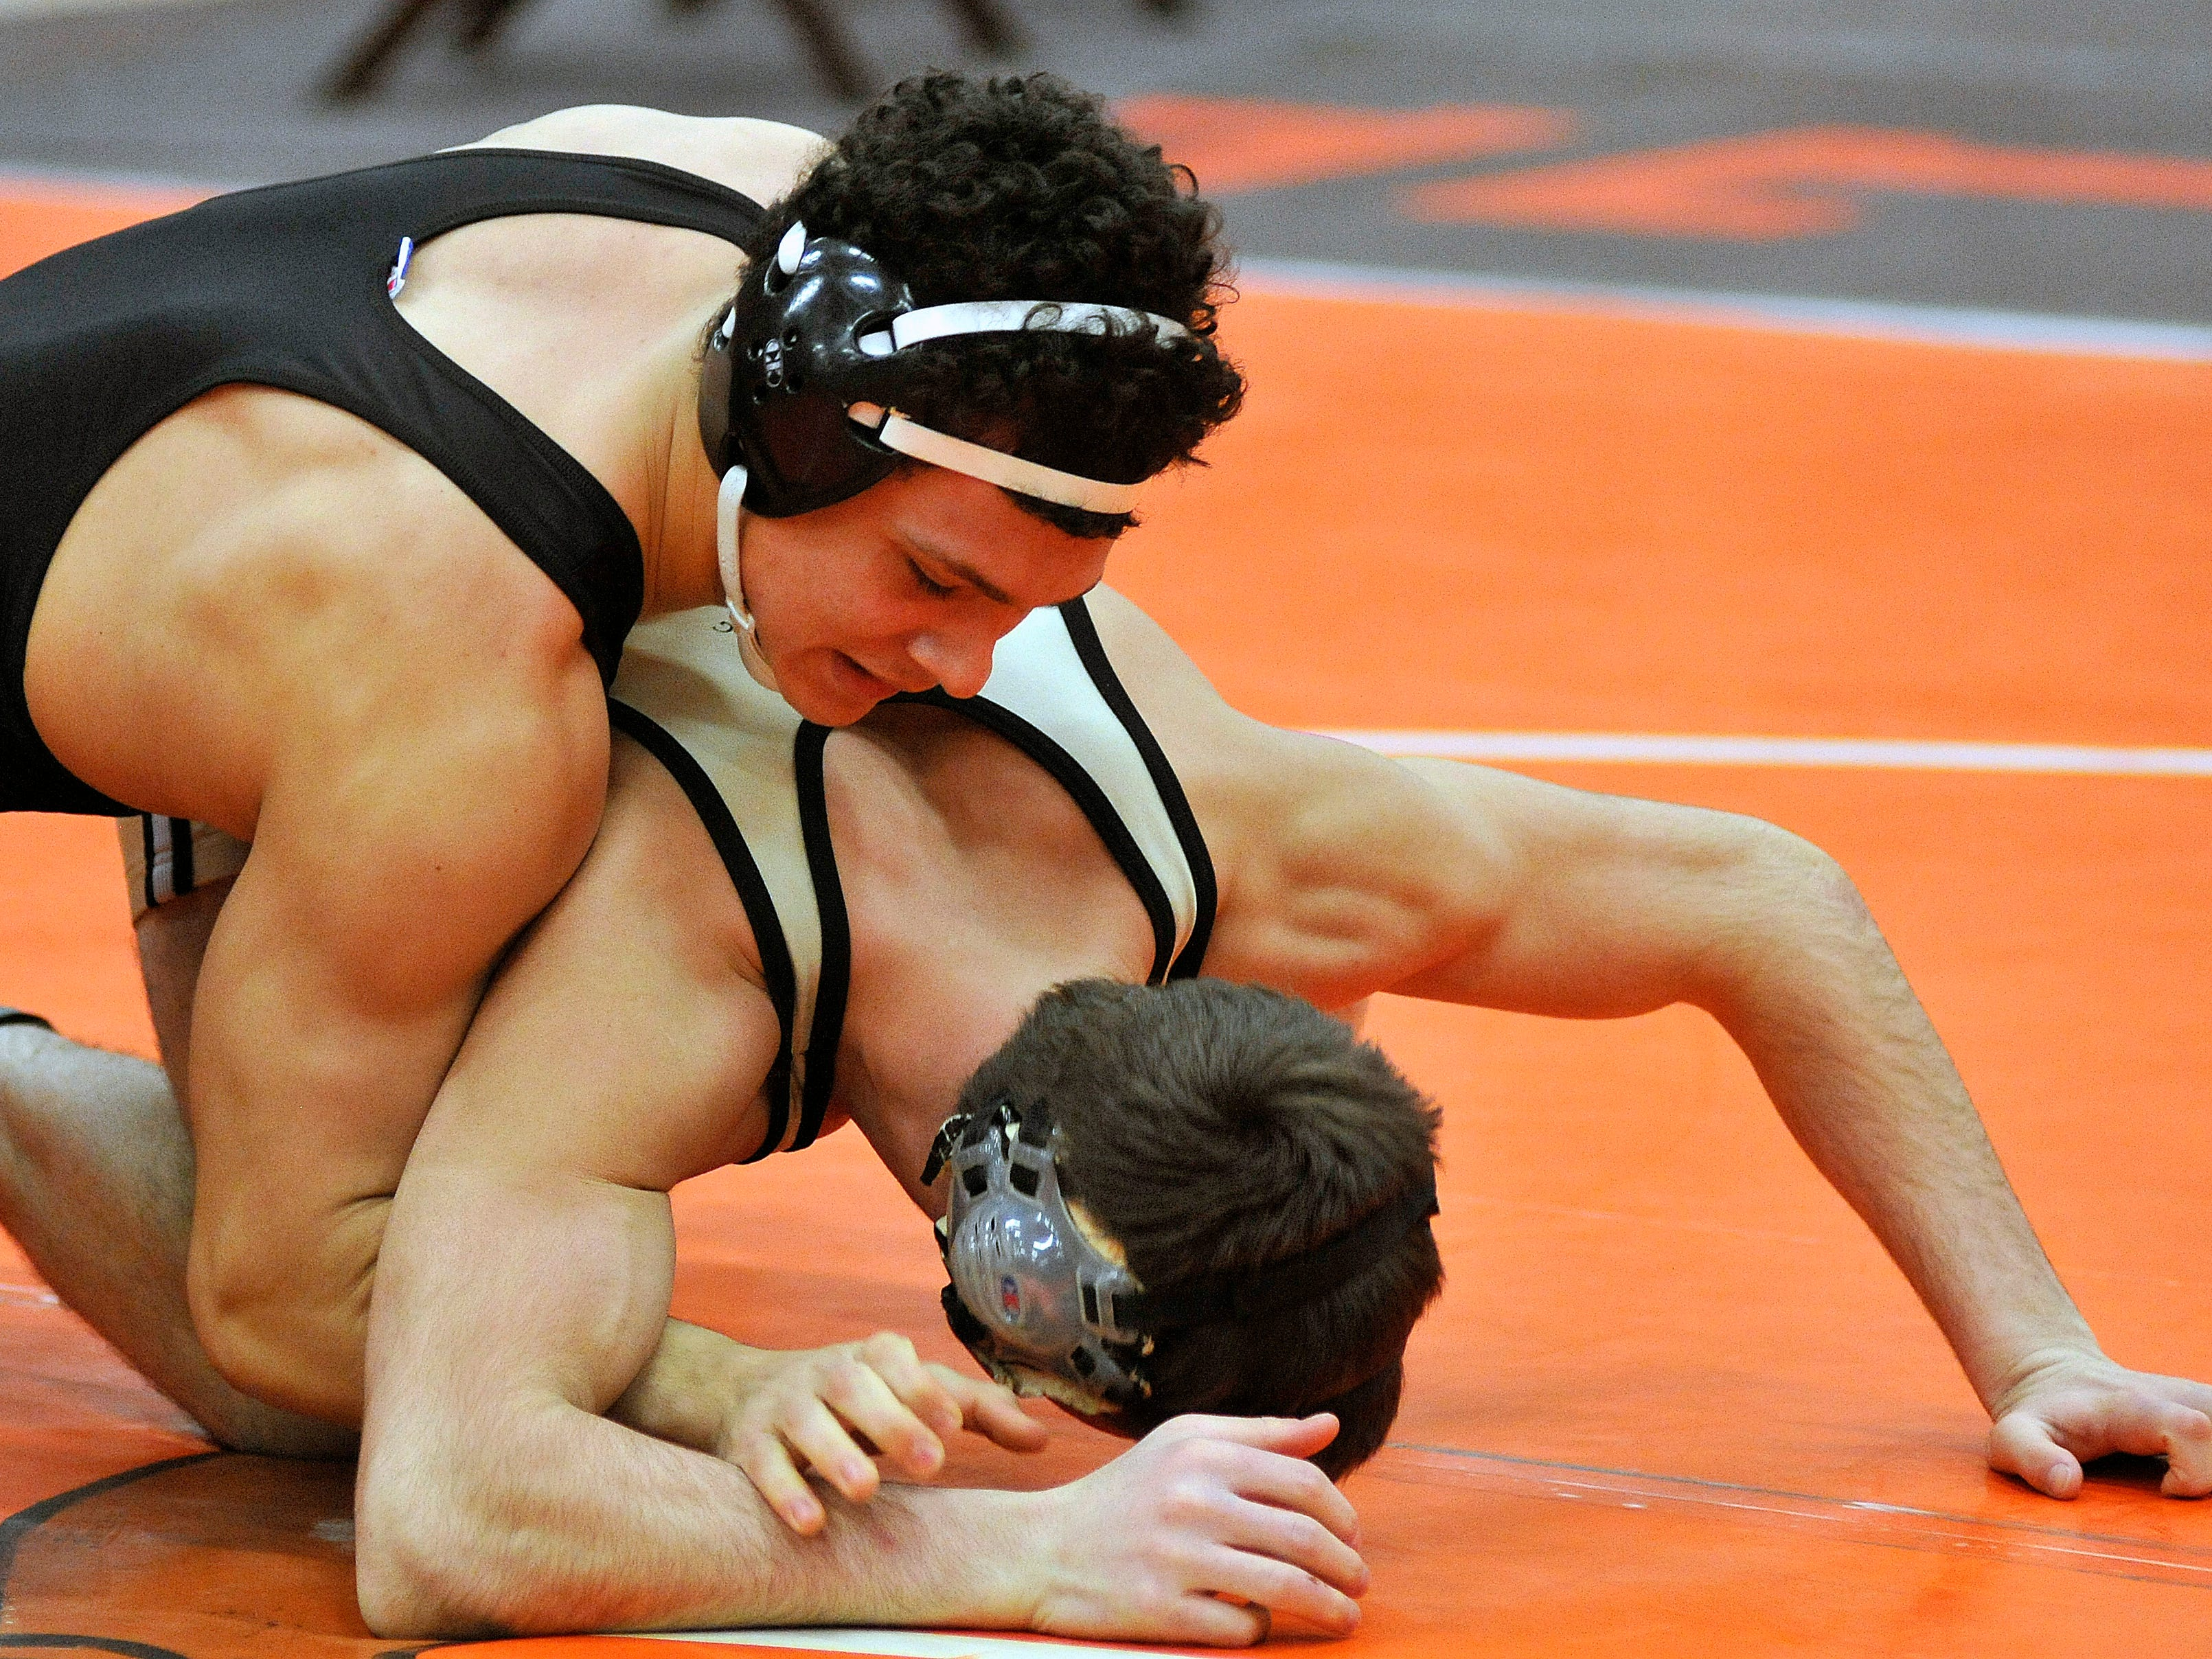 Mansfield Senior's Jesse Palser, the No. 1-ranked 170-pounder in the state, pinned his way to a repeat title in Saturday's Division I sectional meet in Pete Henry Gym. In this match, Palser pinned Perrysburg's Matt Waltermeyer in 1:24.